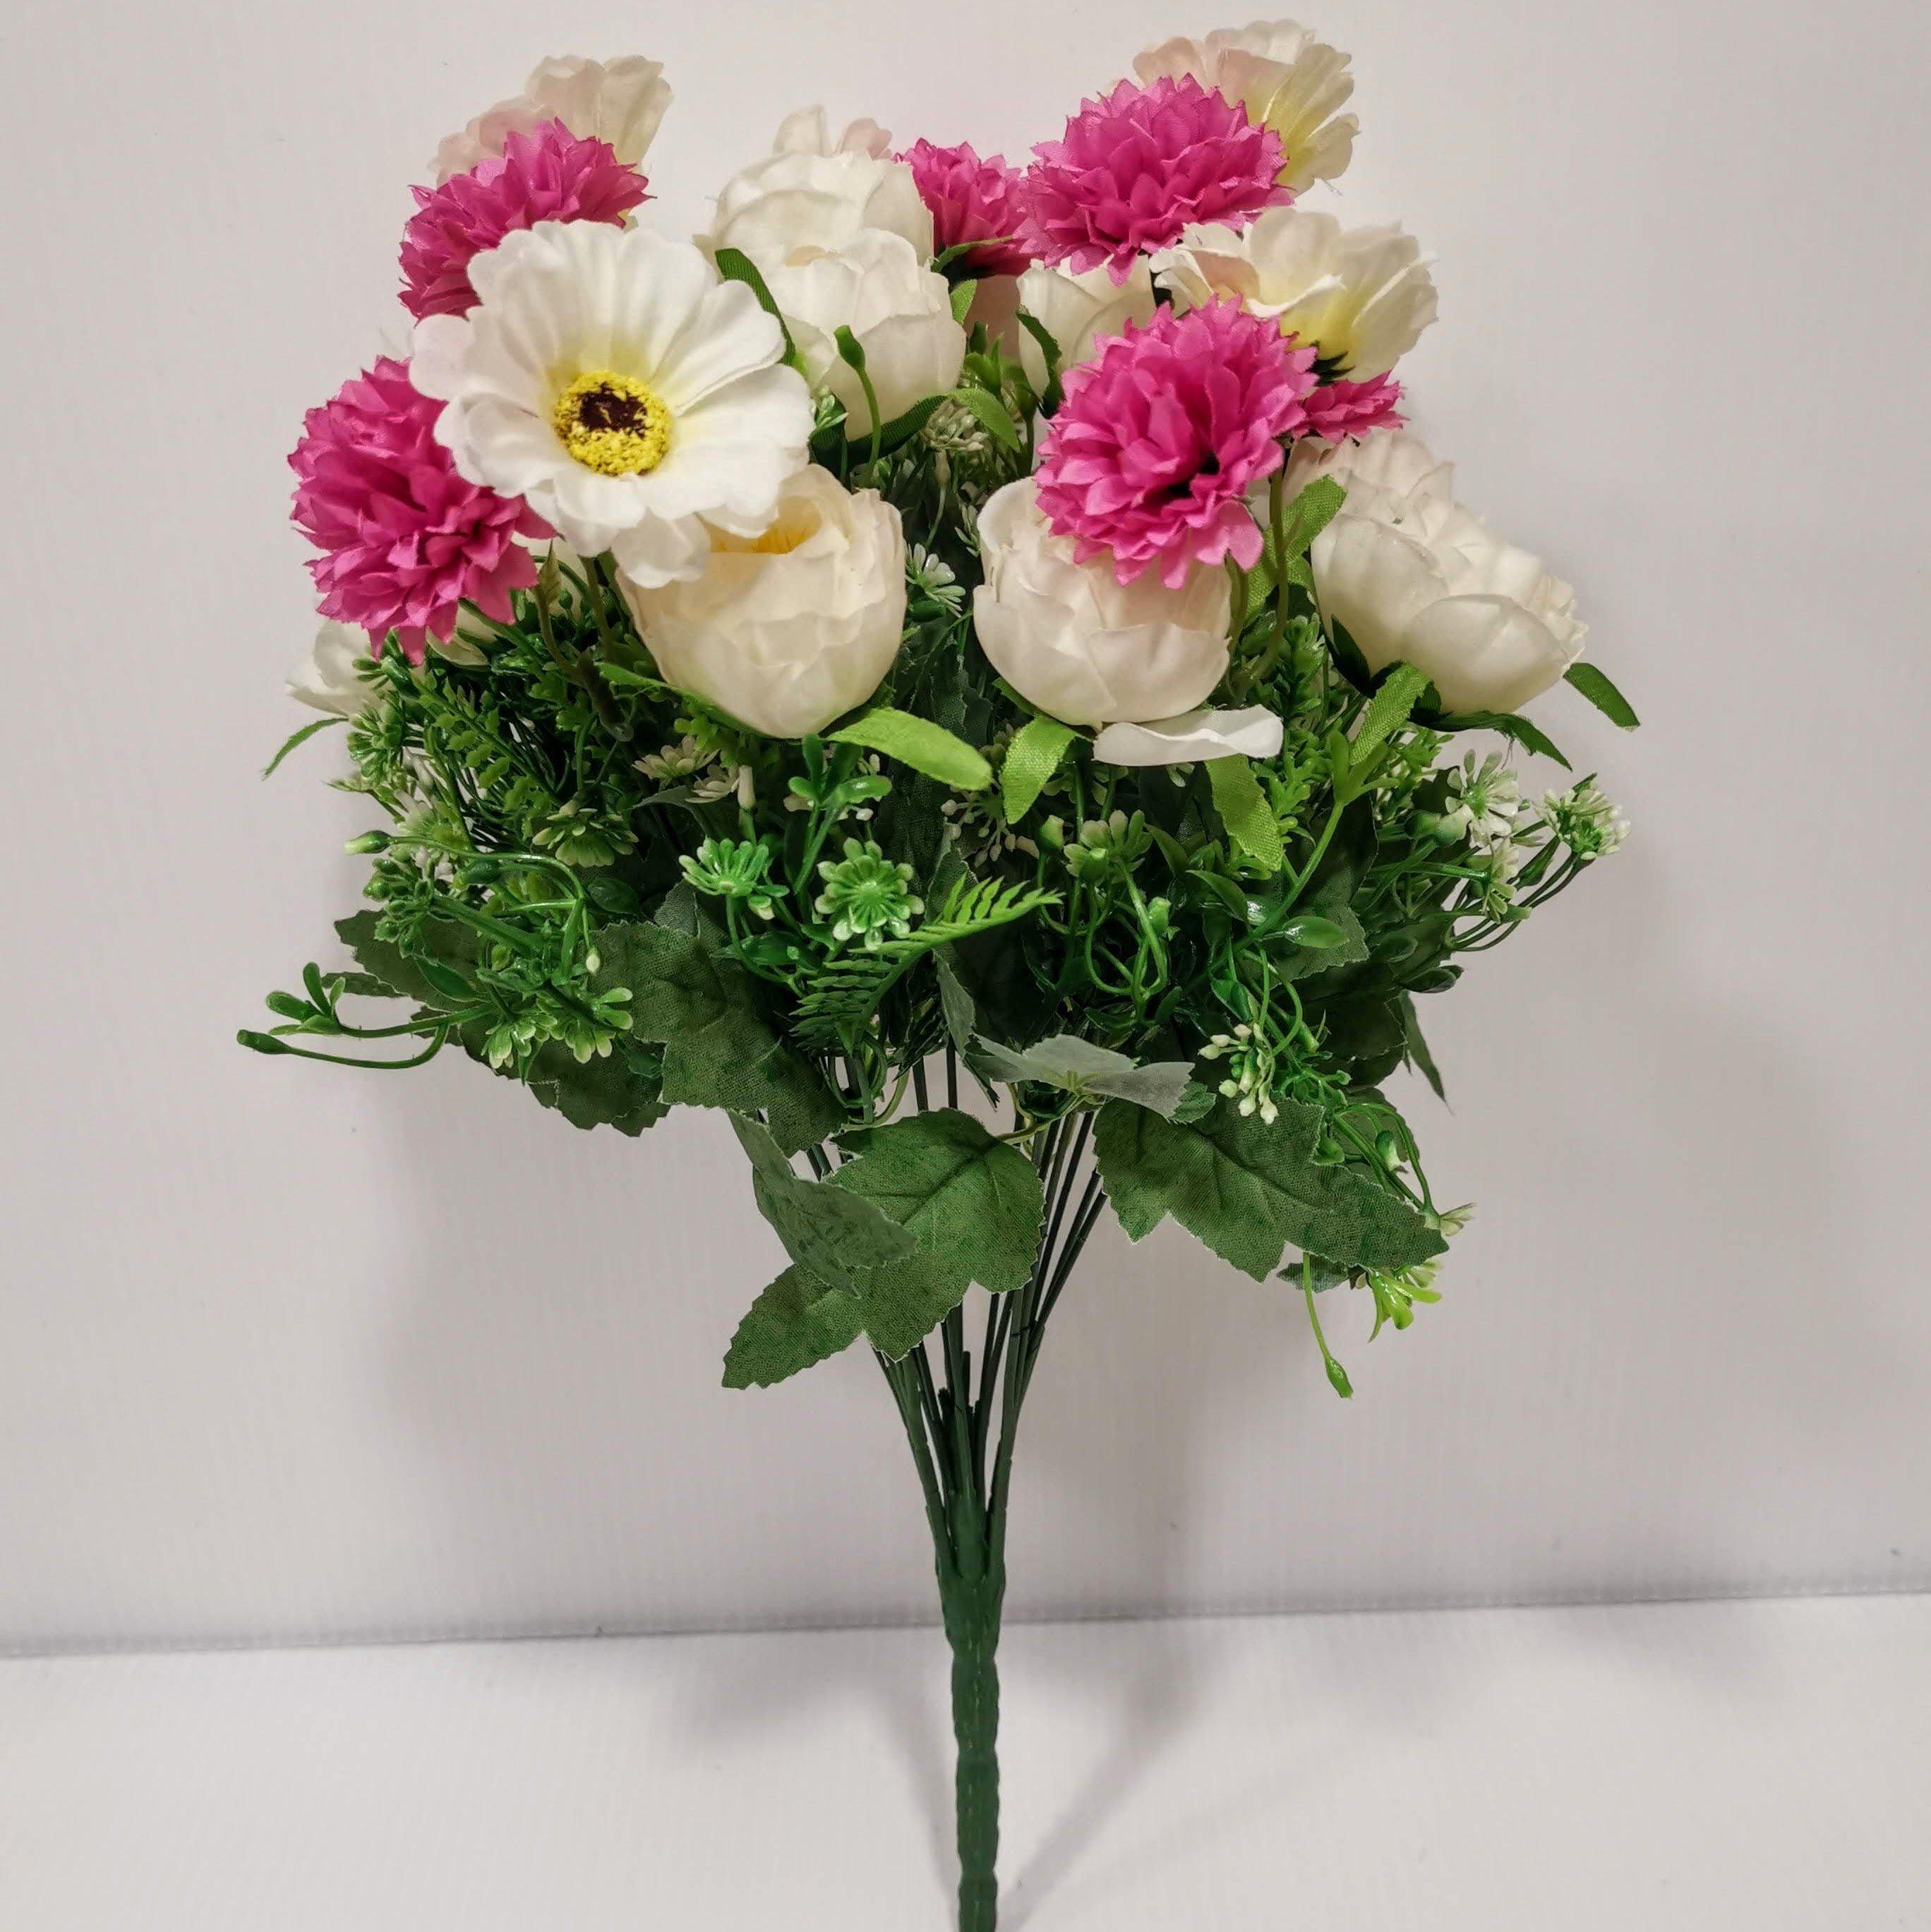 Pink & White Fabric Mixed Flower Bunch